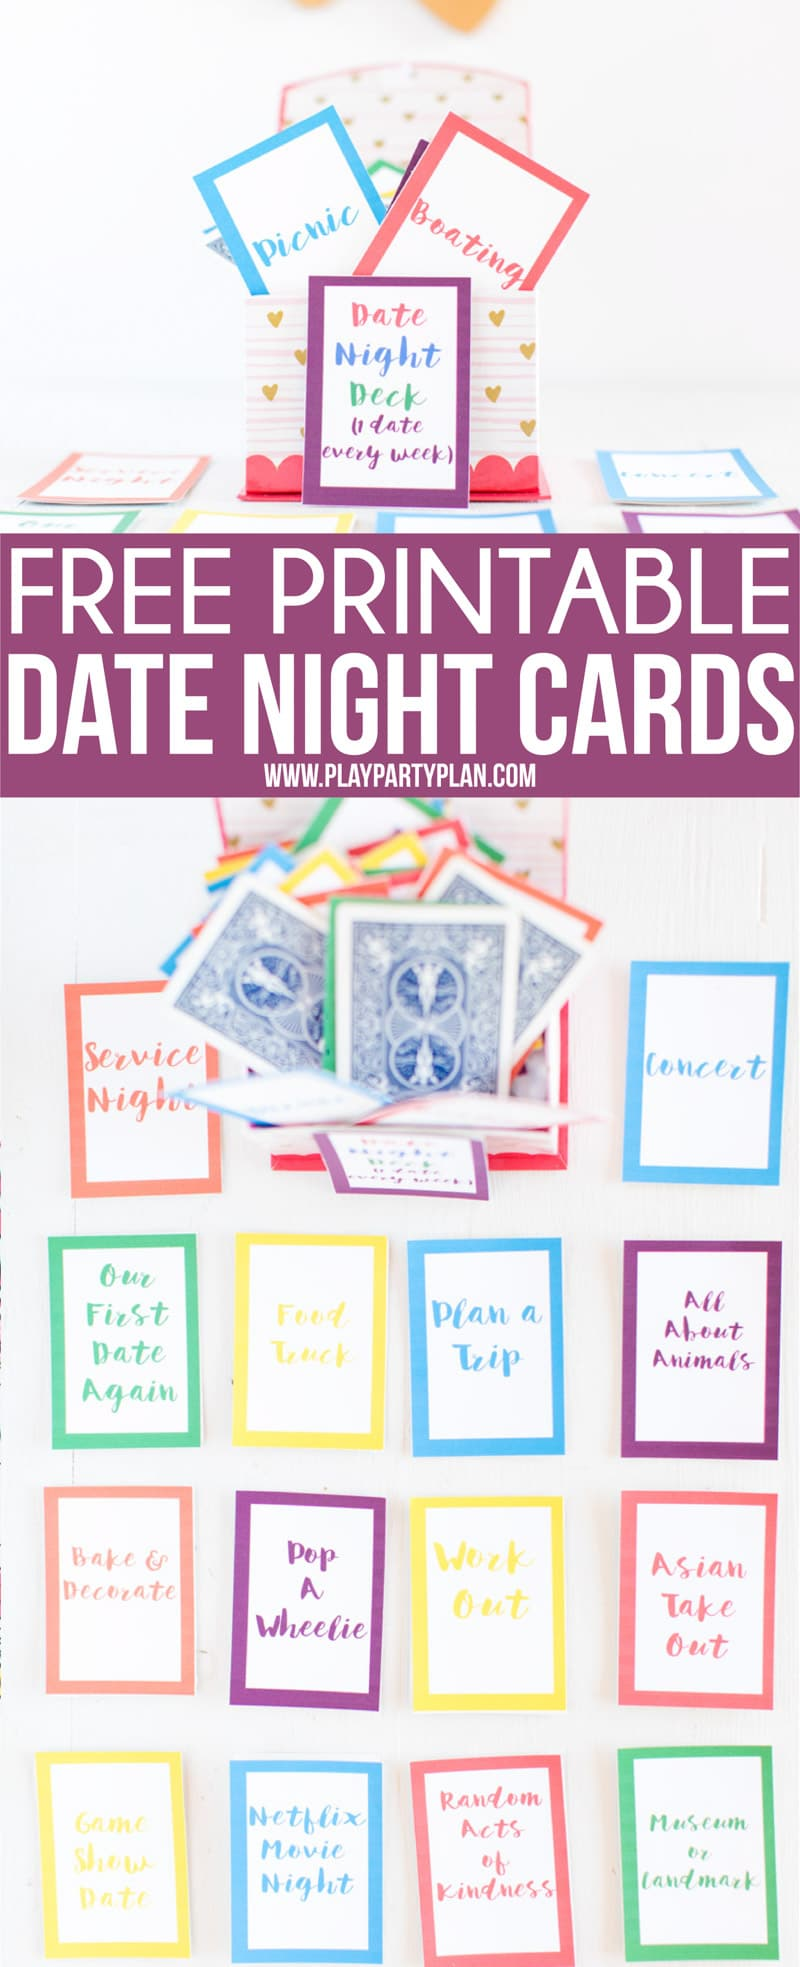 This date night deck is the perfect thoughtful homemade gift for women or for guys! Simply print out the deck, add to playing cards, and have an entire year's worth of date night ideas ready to go! Date nights that work at home, for married couples (or not), or just for someone looking for activities outside of a romantic dinner out. #datenight #datenightideas #giftideas #valentinesday #anniversarygift #gifts